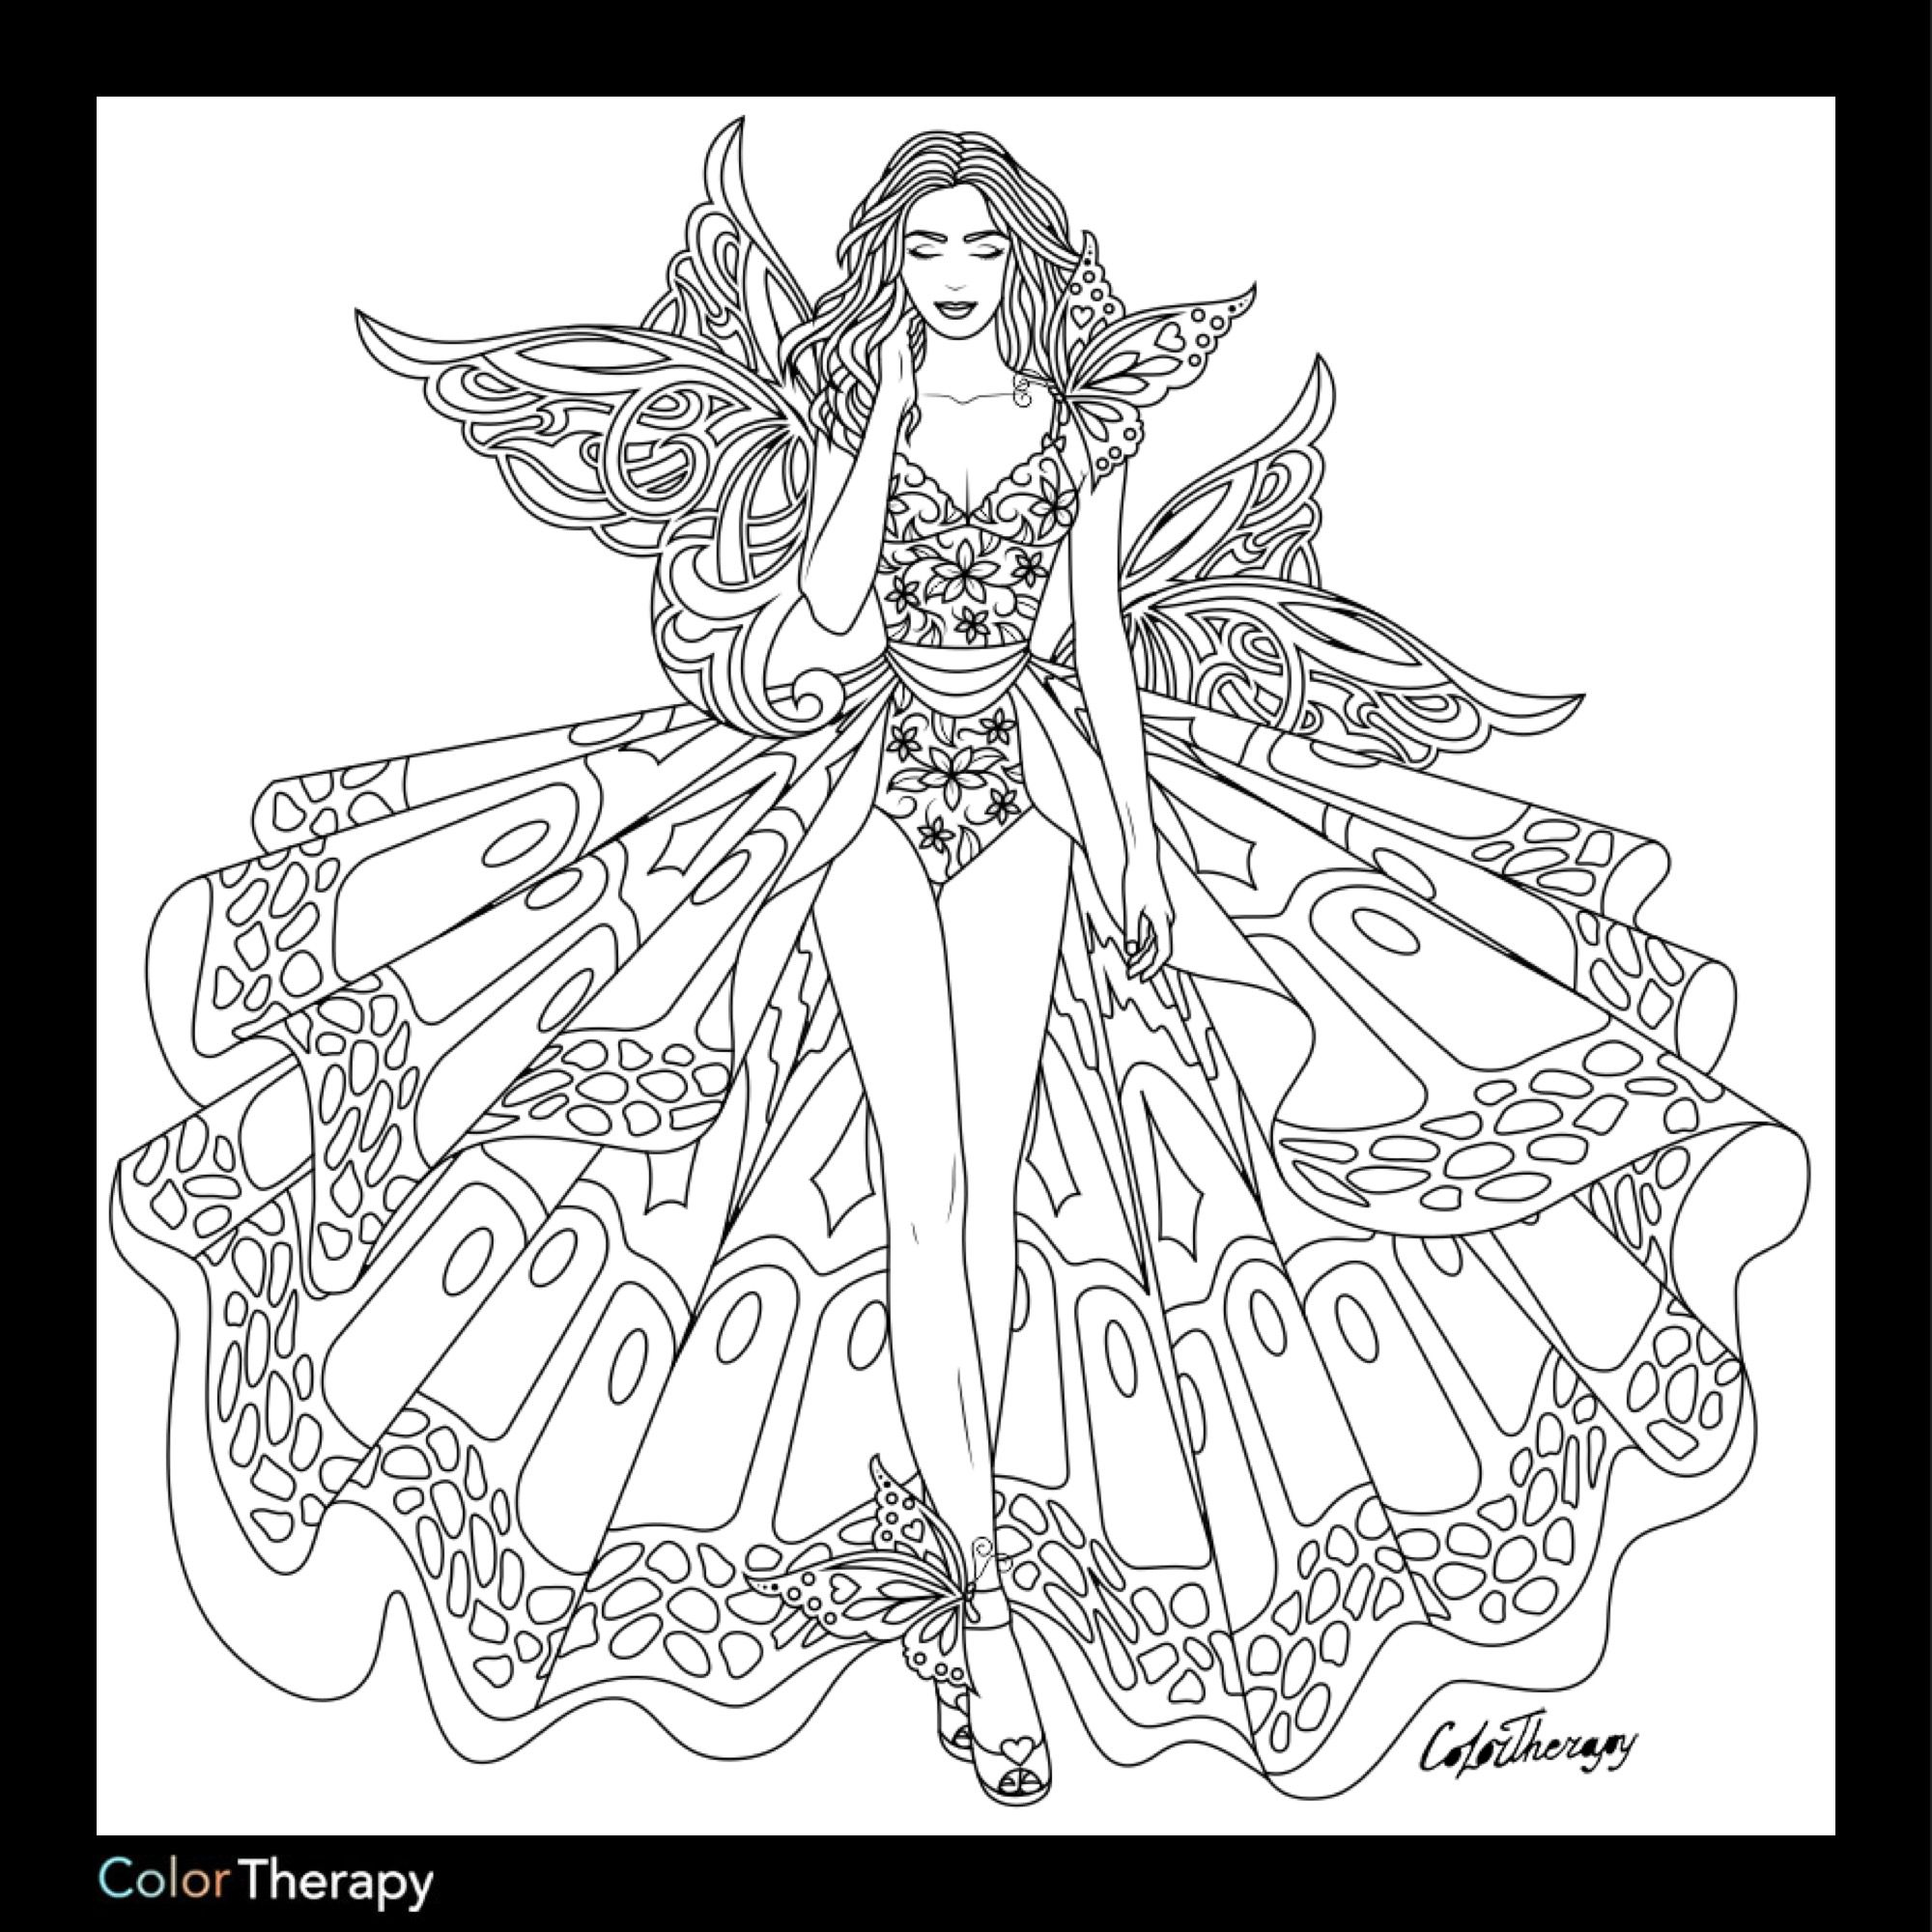 Pin By Mr Geller On Coloring Pages Coloring Pages Fairy Coloring Pages Coloring Books